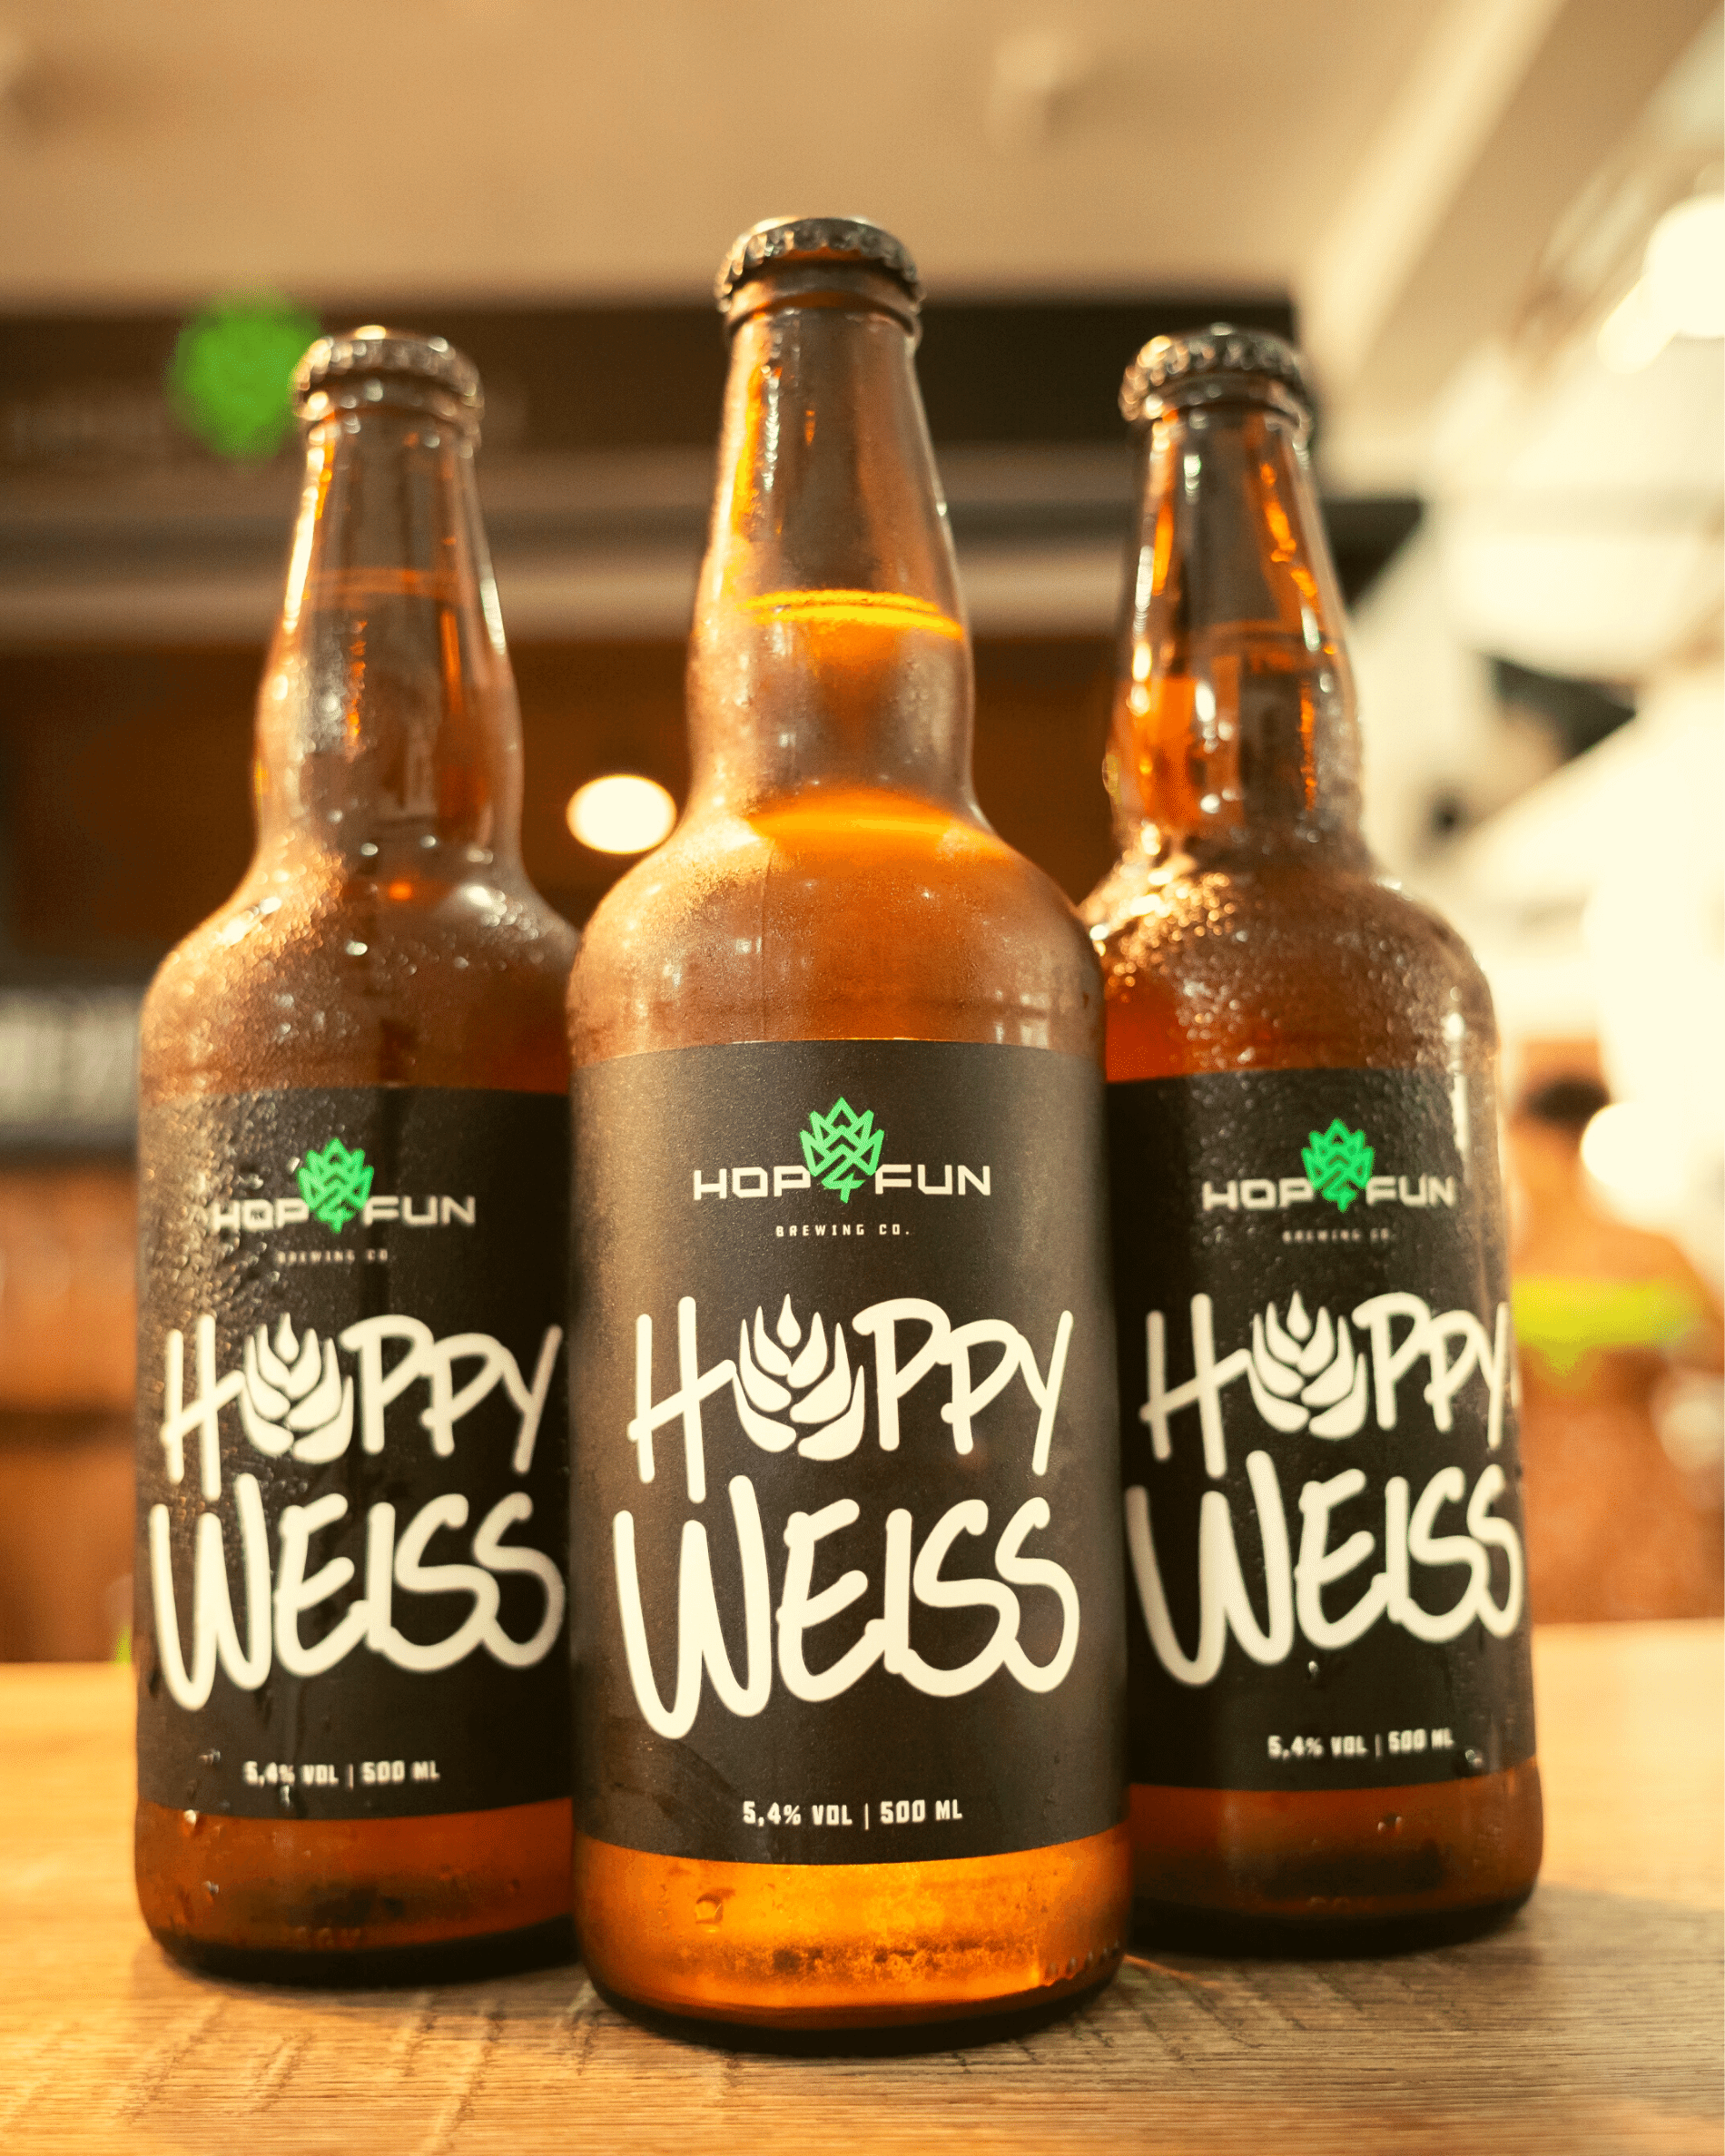 Hop For Fun cervejas especiais Hoppy Weiss